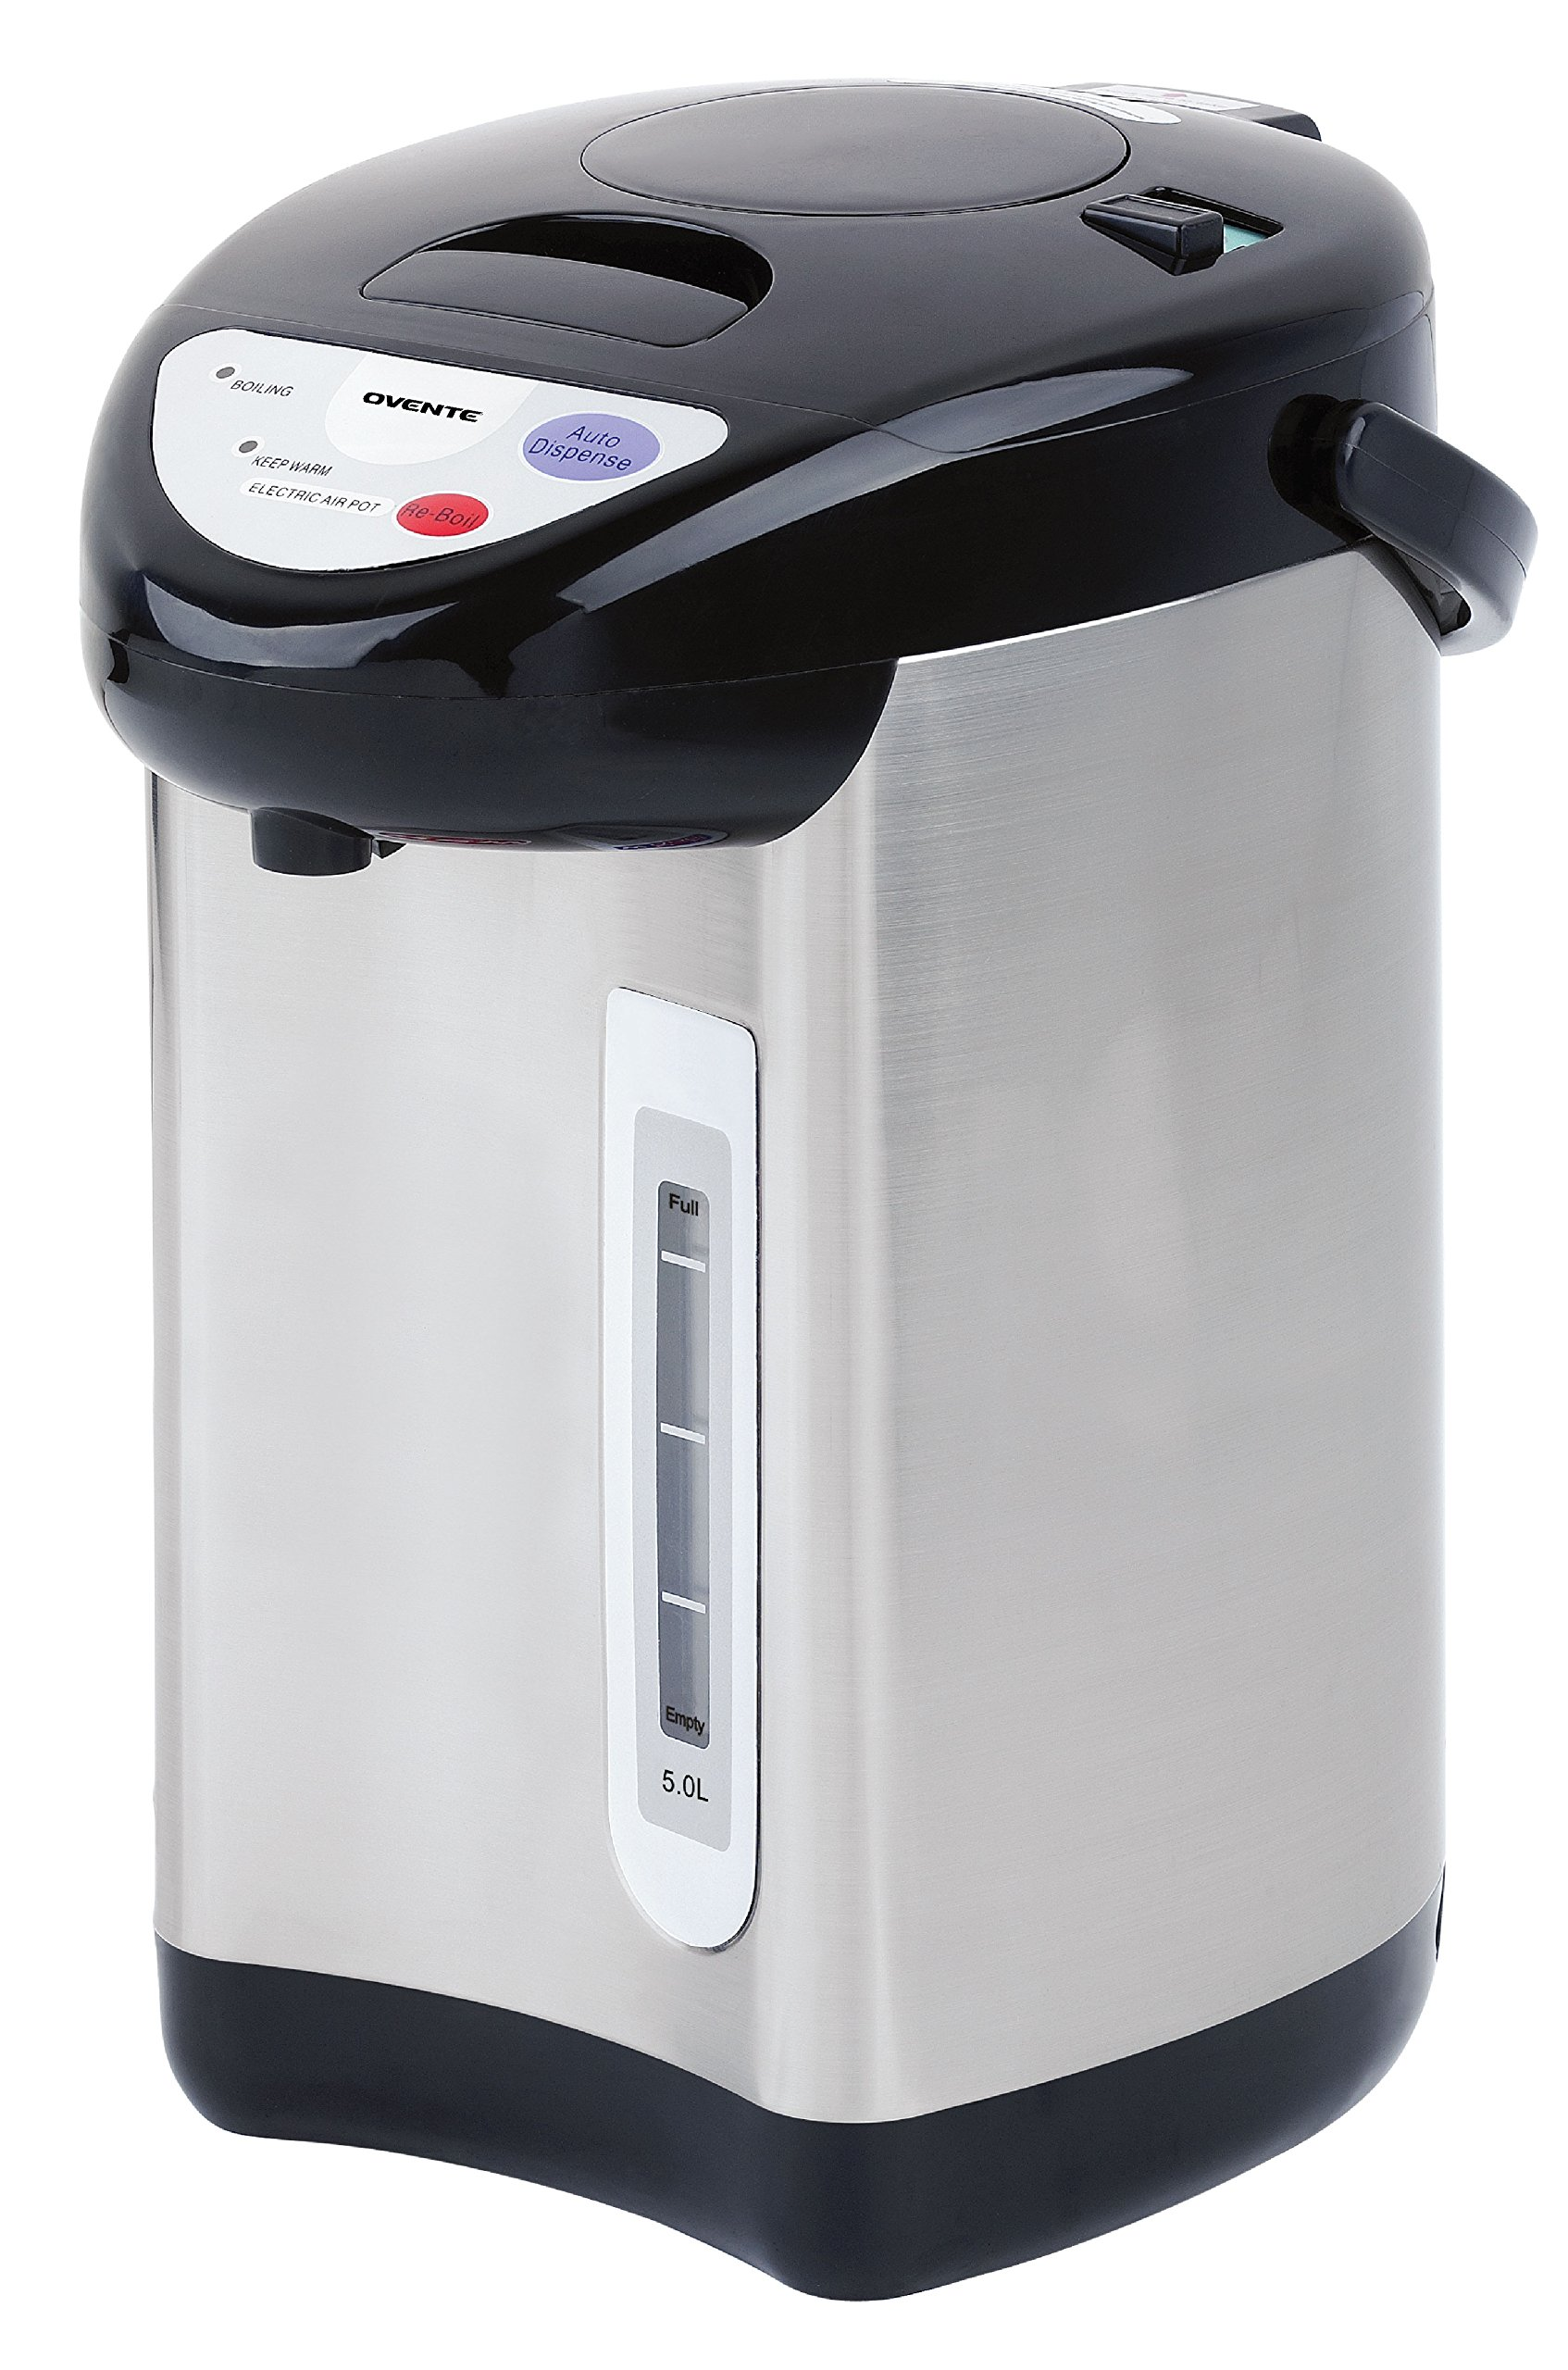 Ovente WA50S 5.0 Liter Insulated Water Dispenser with Boiler and Keep Warm Function,Black Stainless Steel